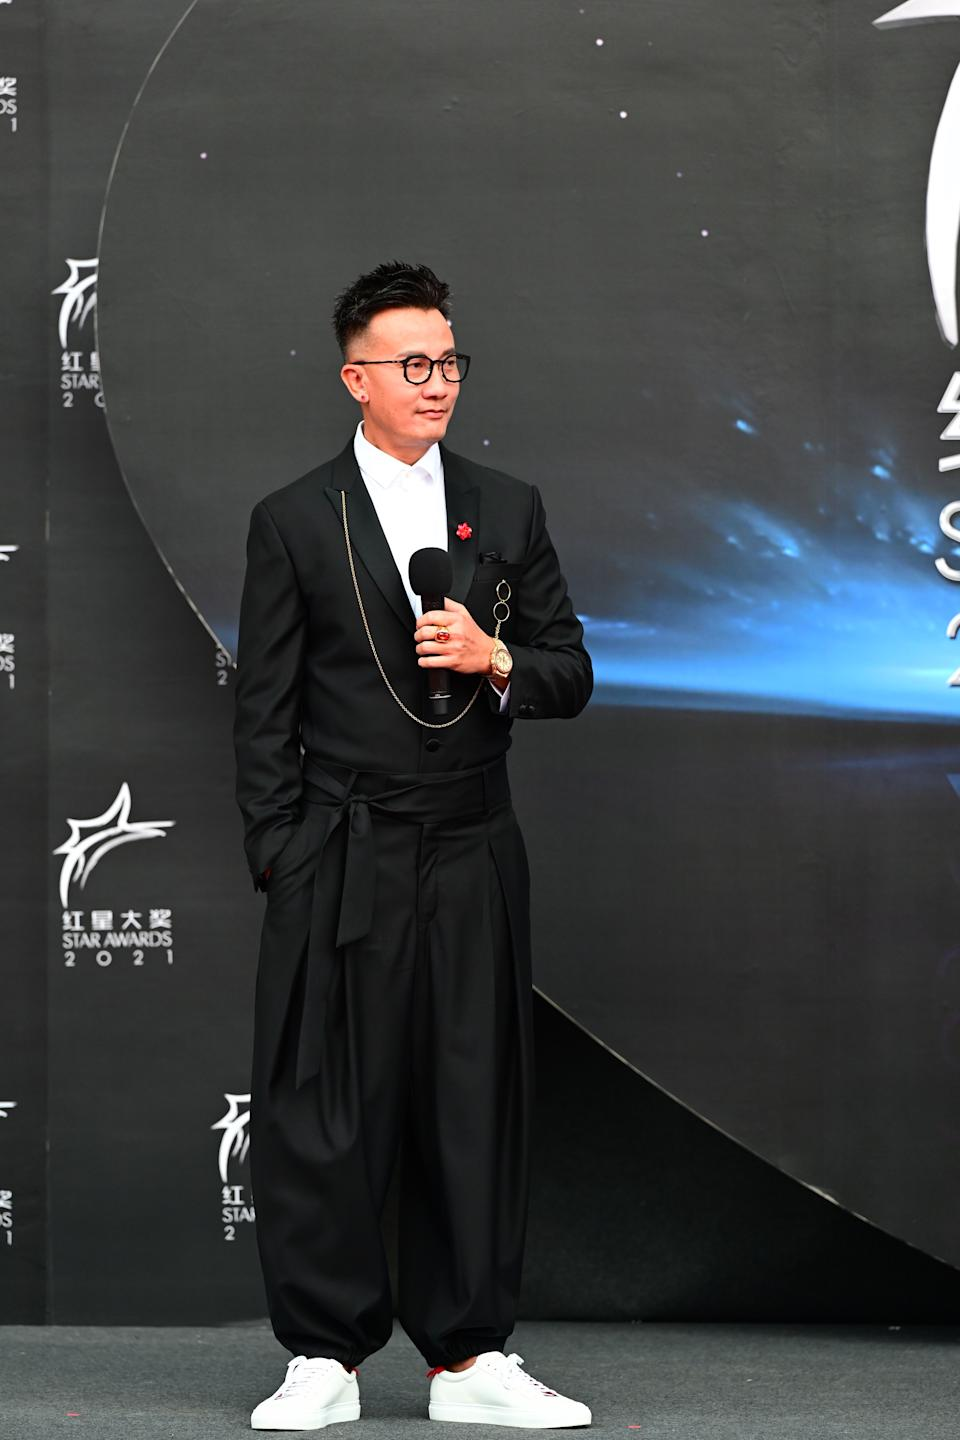 Chen Han Wei at Star Awards held at Changi Airport on 18 April 2021. (Photo: Mediacorp)